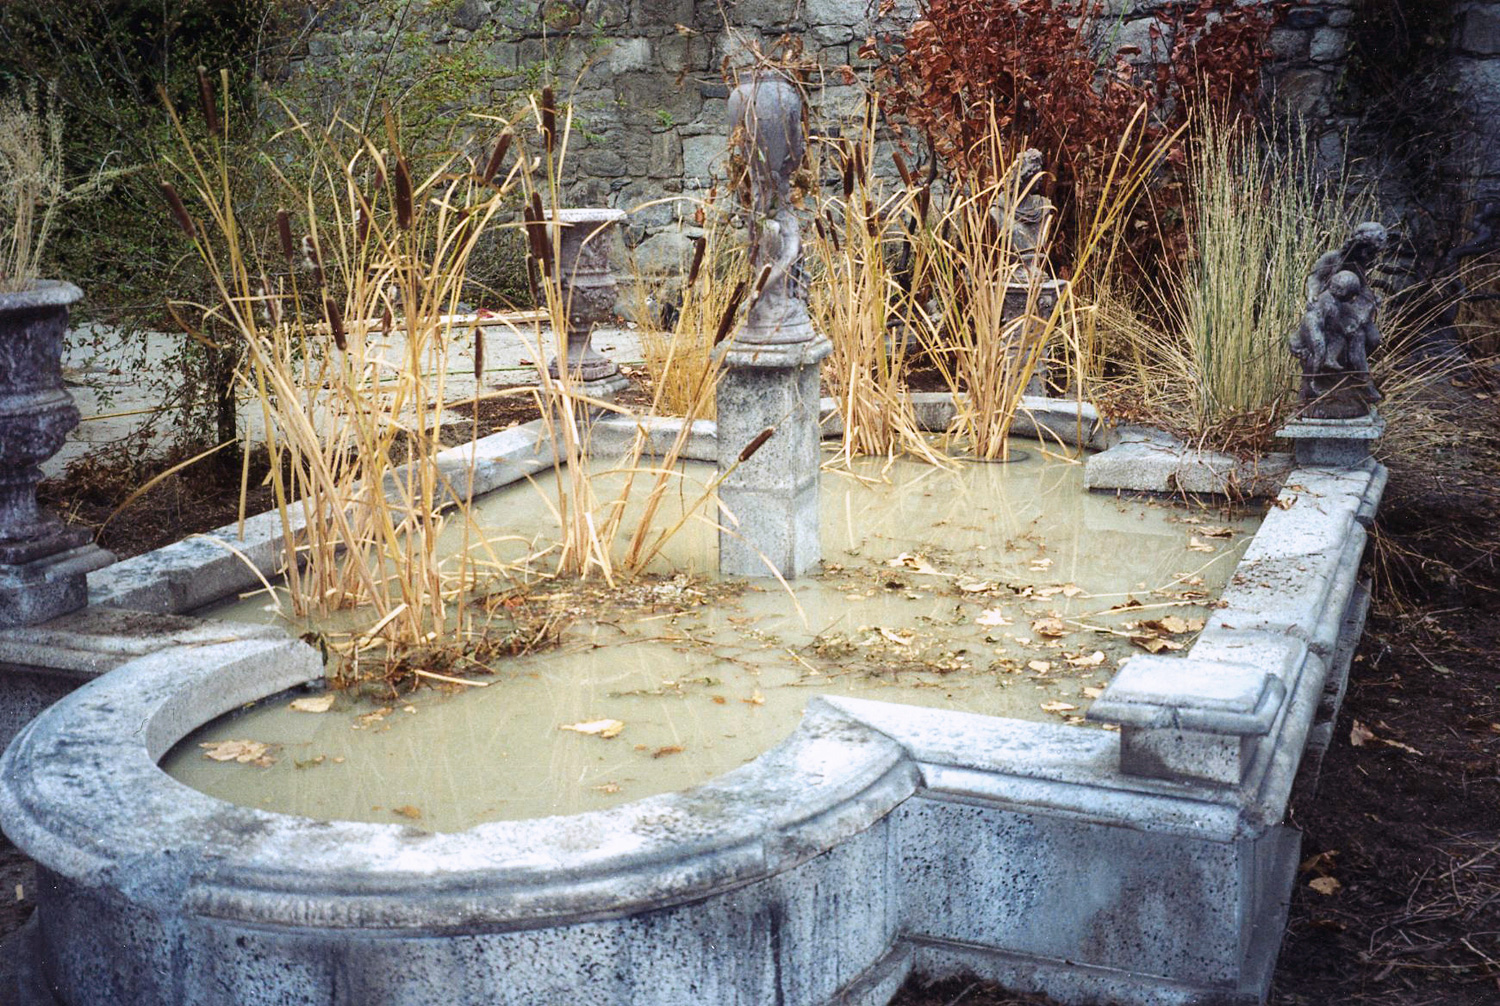 Here is a shot of the practical, formal English pond gone to ruin.